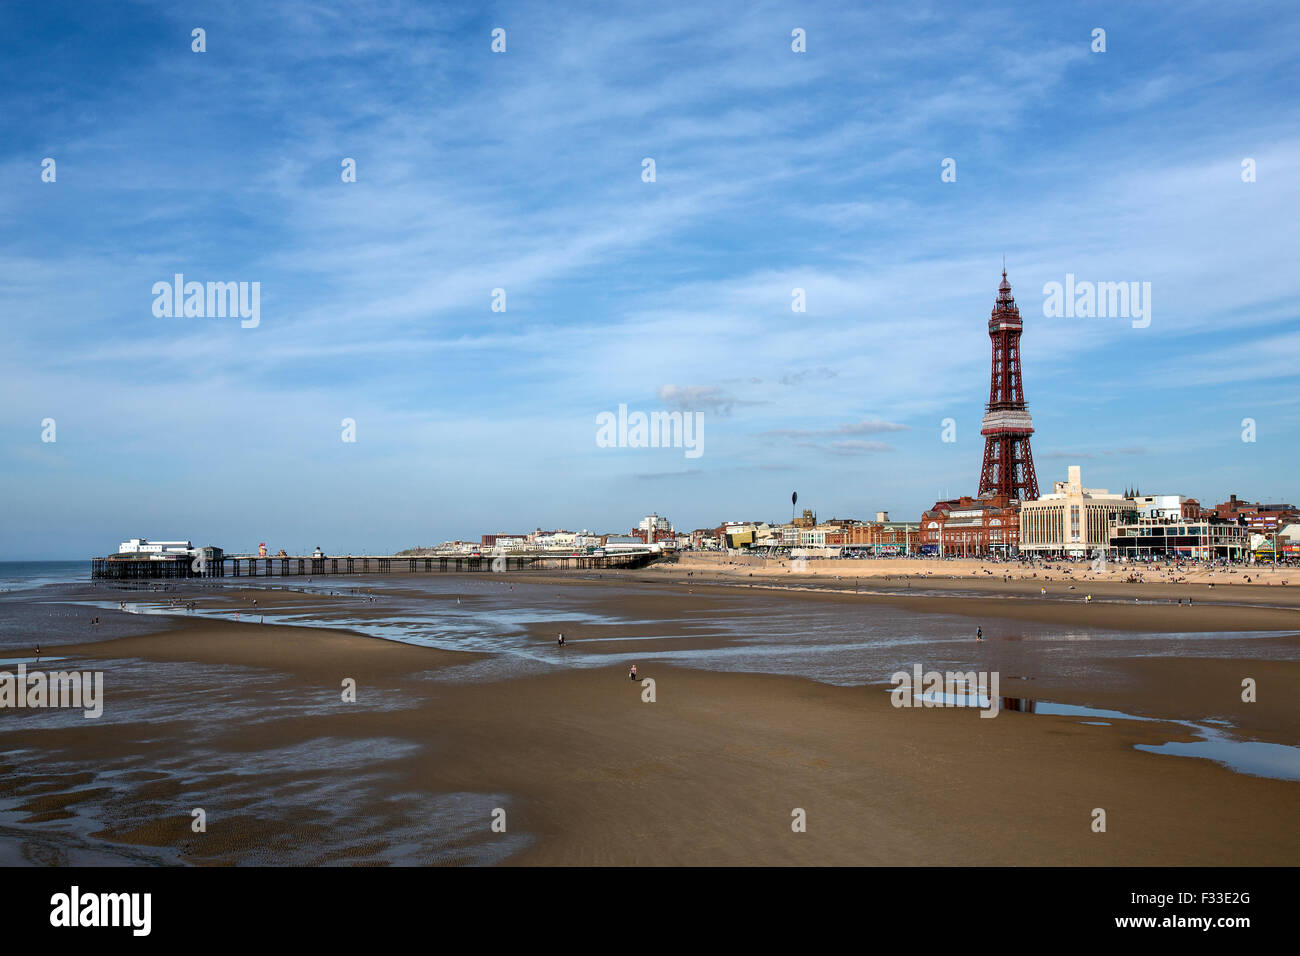 The old North Pier and Blackpool Tower in the seaside resort of Blackpool on the northwest coast of England. Stock Photo